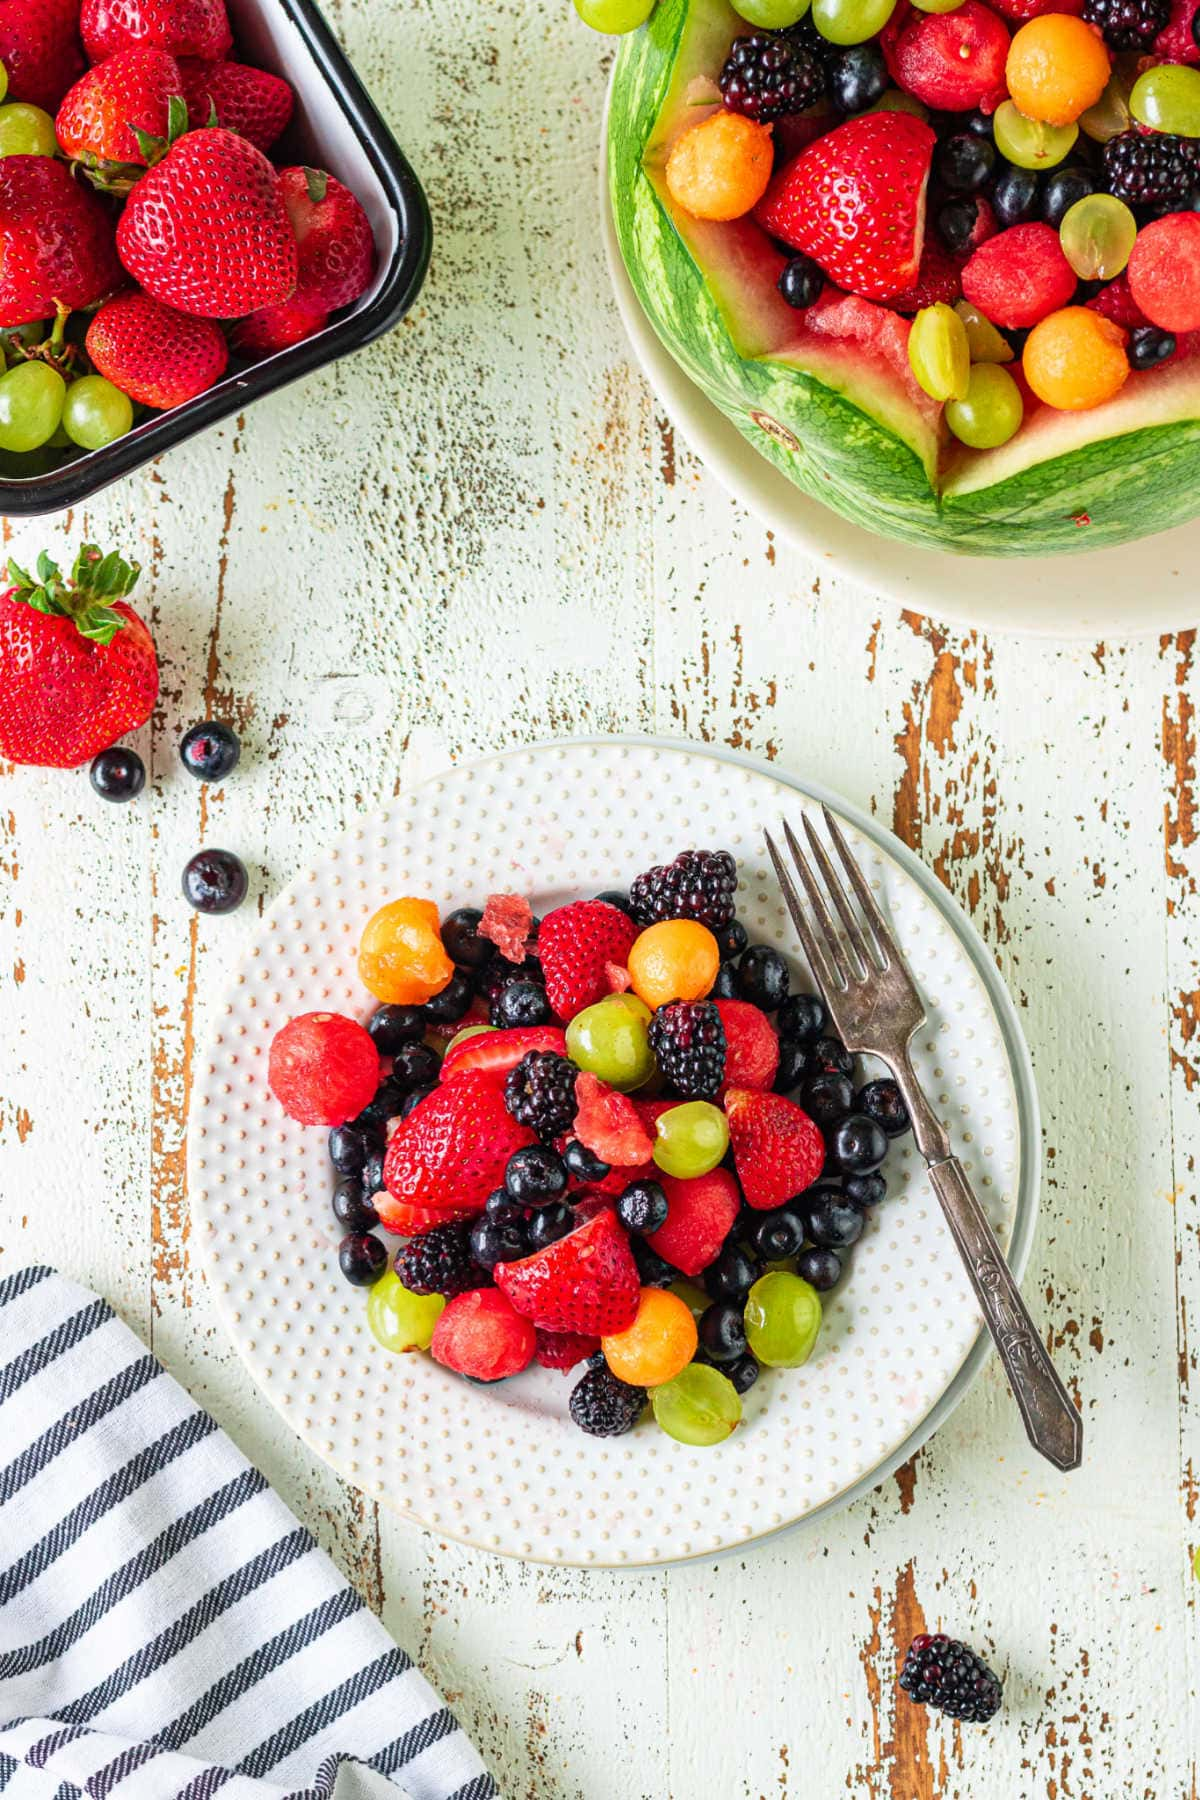 Overhead view of a plate of fruit.